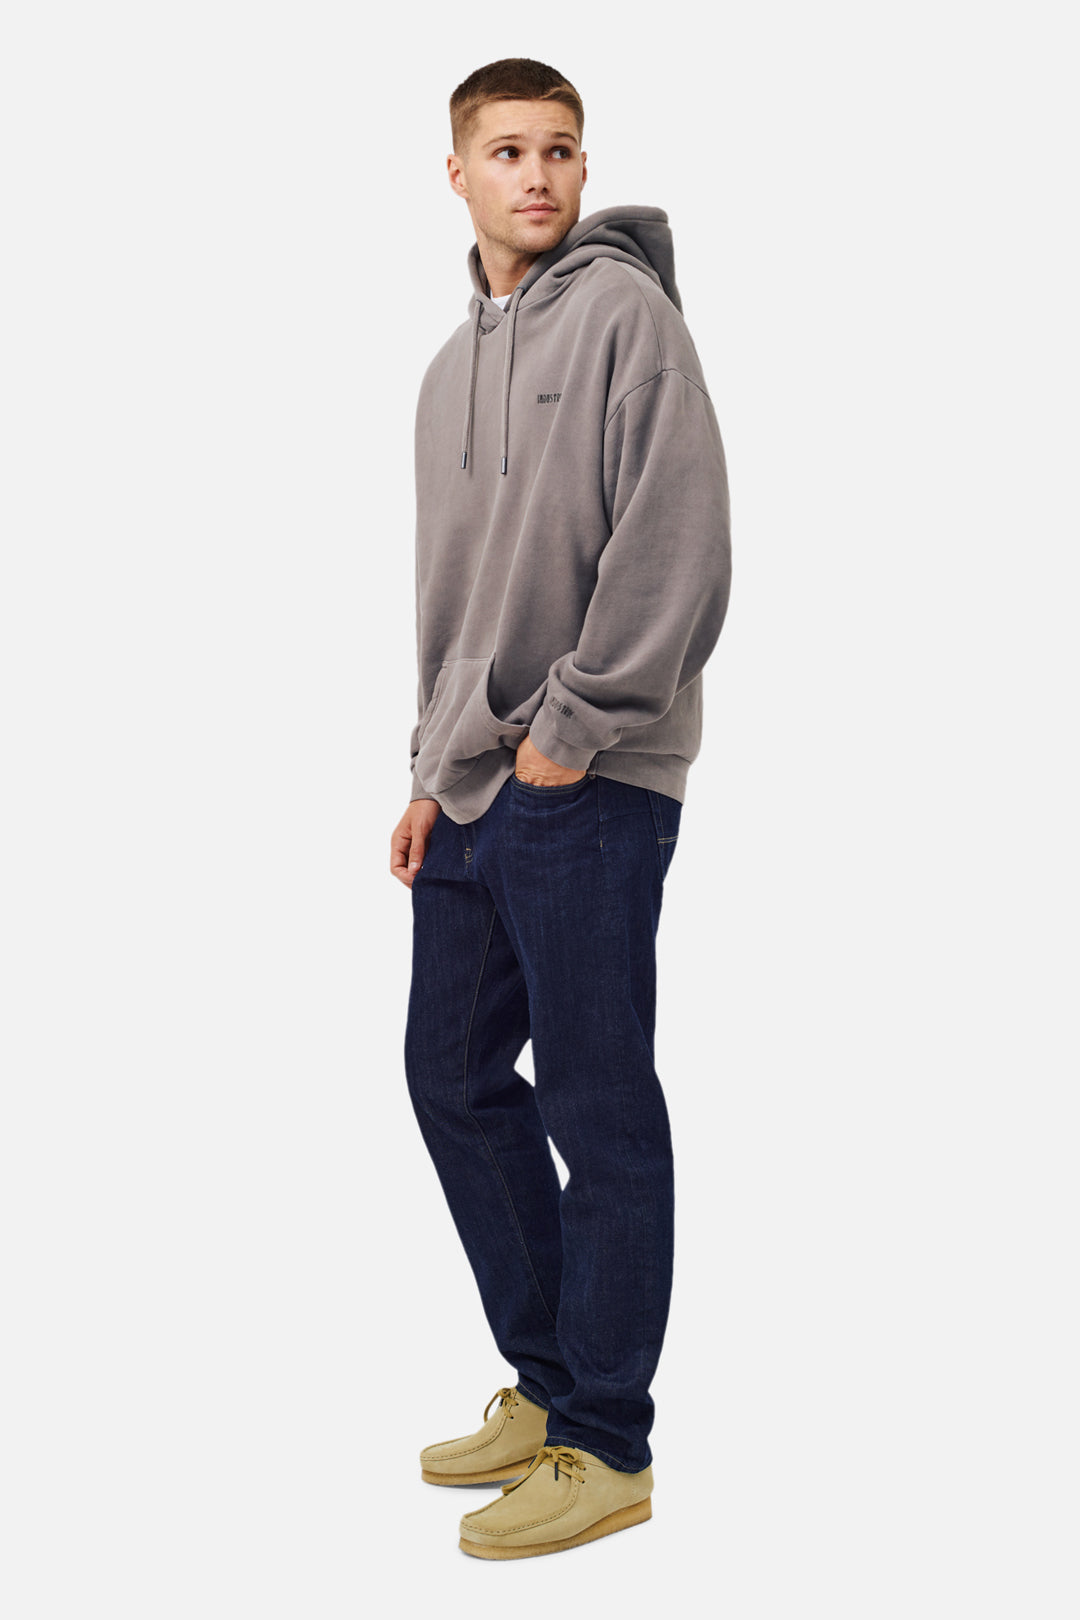 The Del Sur Hoodie - Putty